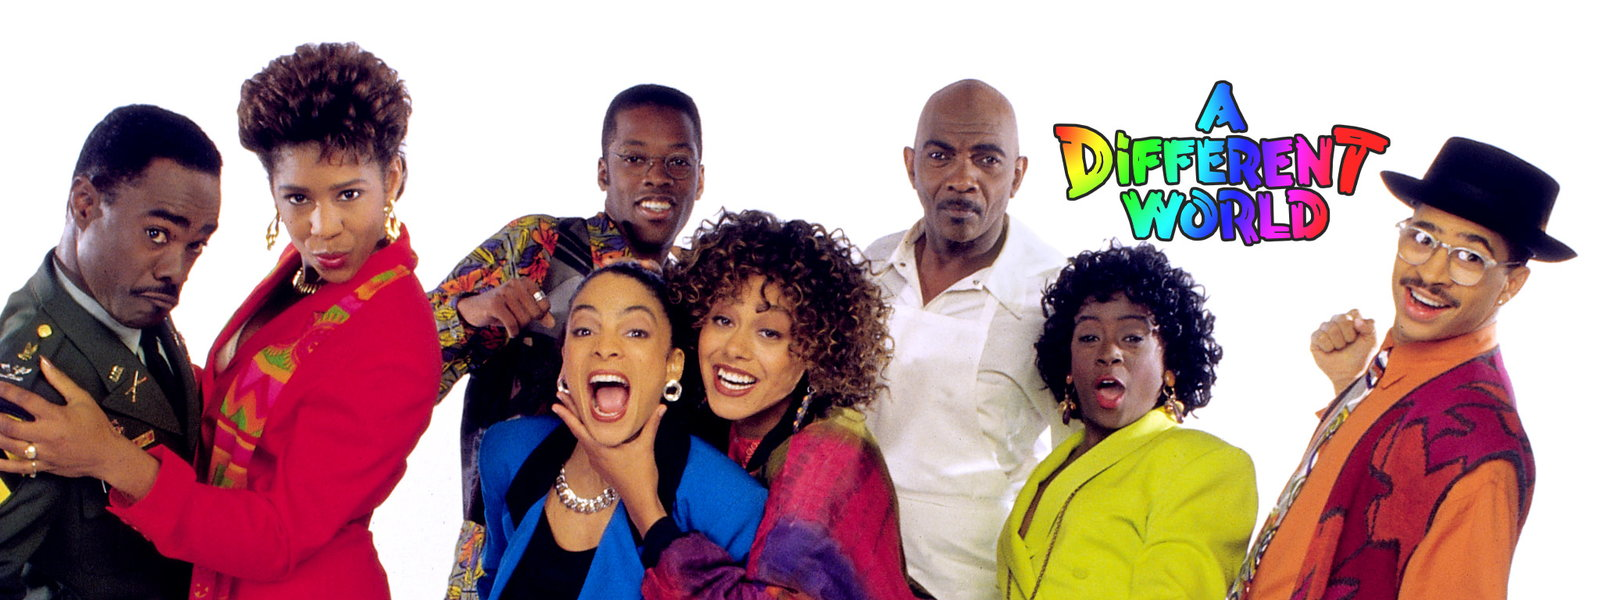 5 90's TV Shows That Still Impact The Culture Today - The